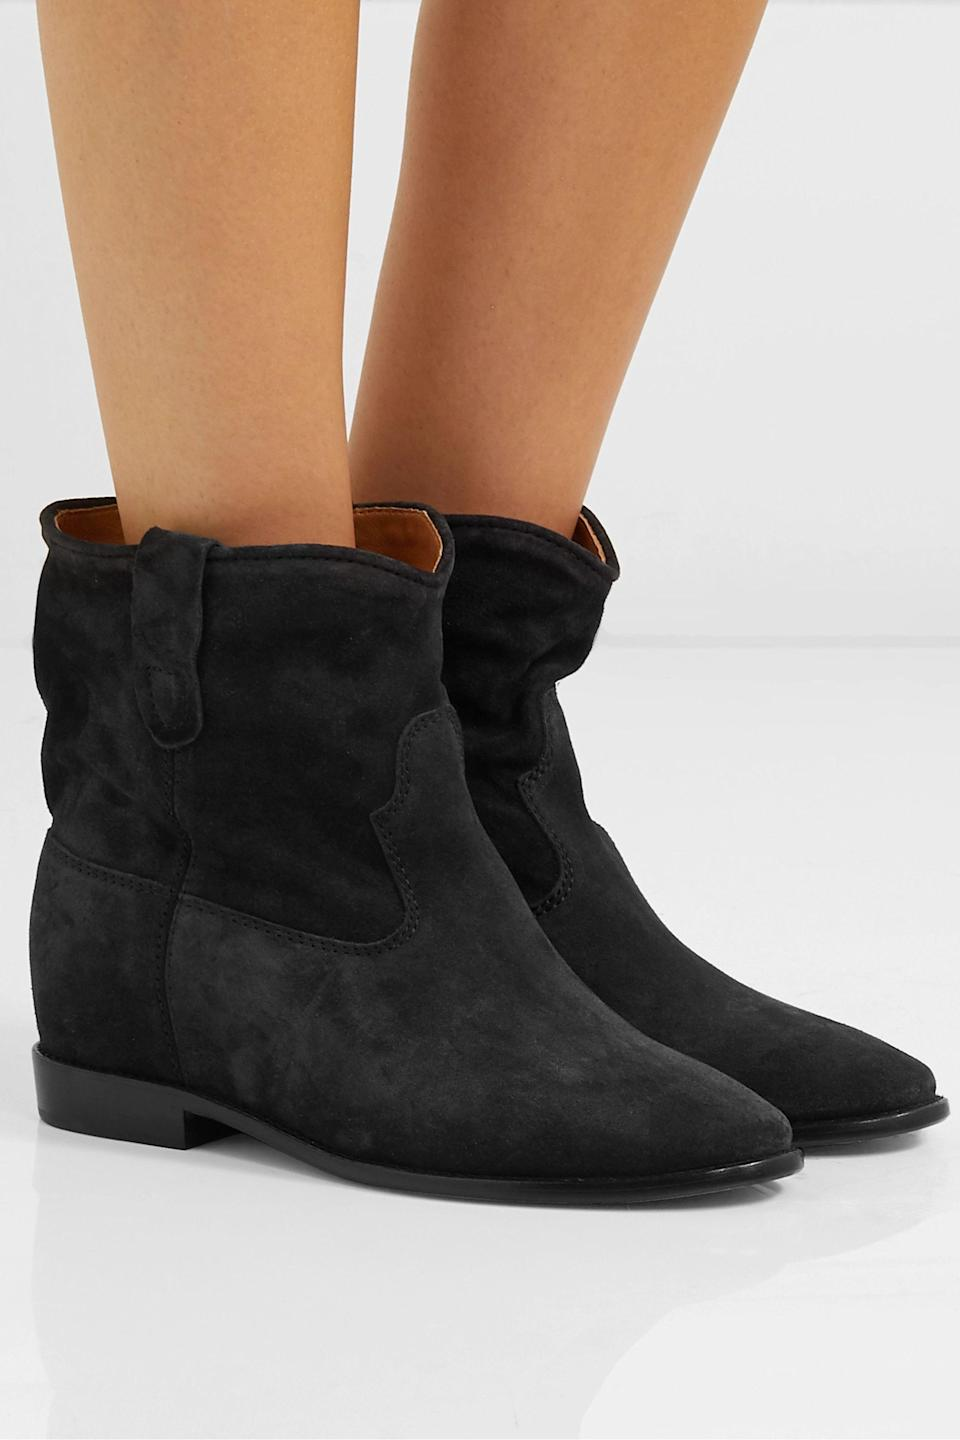 """<p><strong>Isabel Marant </strong></p><p>net-a-porter.com</p><p><strong>$680.00</strong></p><p><a href=""""https://go.redirectingat.com?id=74968X1596630&url=https%3A%2F%2Fwww.net-a-porter.com%2Fen-us%2Fshop%2Fproduct%2Fisabel-marant%2Fshoes%2Fankle%2Fcrisi-suede-ankle-boots%2F8378037991351528&sref=https%3A%2F%2Fwww.townandcountrymag.com%2Fstyle%2Ffashion-trends%2Fg28225508%2Ffall-boots%2F"""" rel=""""nofollow noopener"""" target=""""_blank"""" data-ylk=""""slk:Shop Now"""" class=""""link rapid-noclick-resp"""">Shop Now</a></p><p>It doesn't get much more effortlessly undone and French than Isabel Marant's Crisi booties. And for those who like a little extra height from their shoes: fear not, these have an interior wedge heel for just a smidge more lift. </p>"""